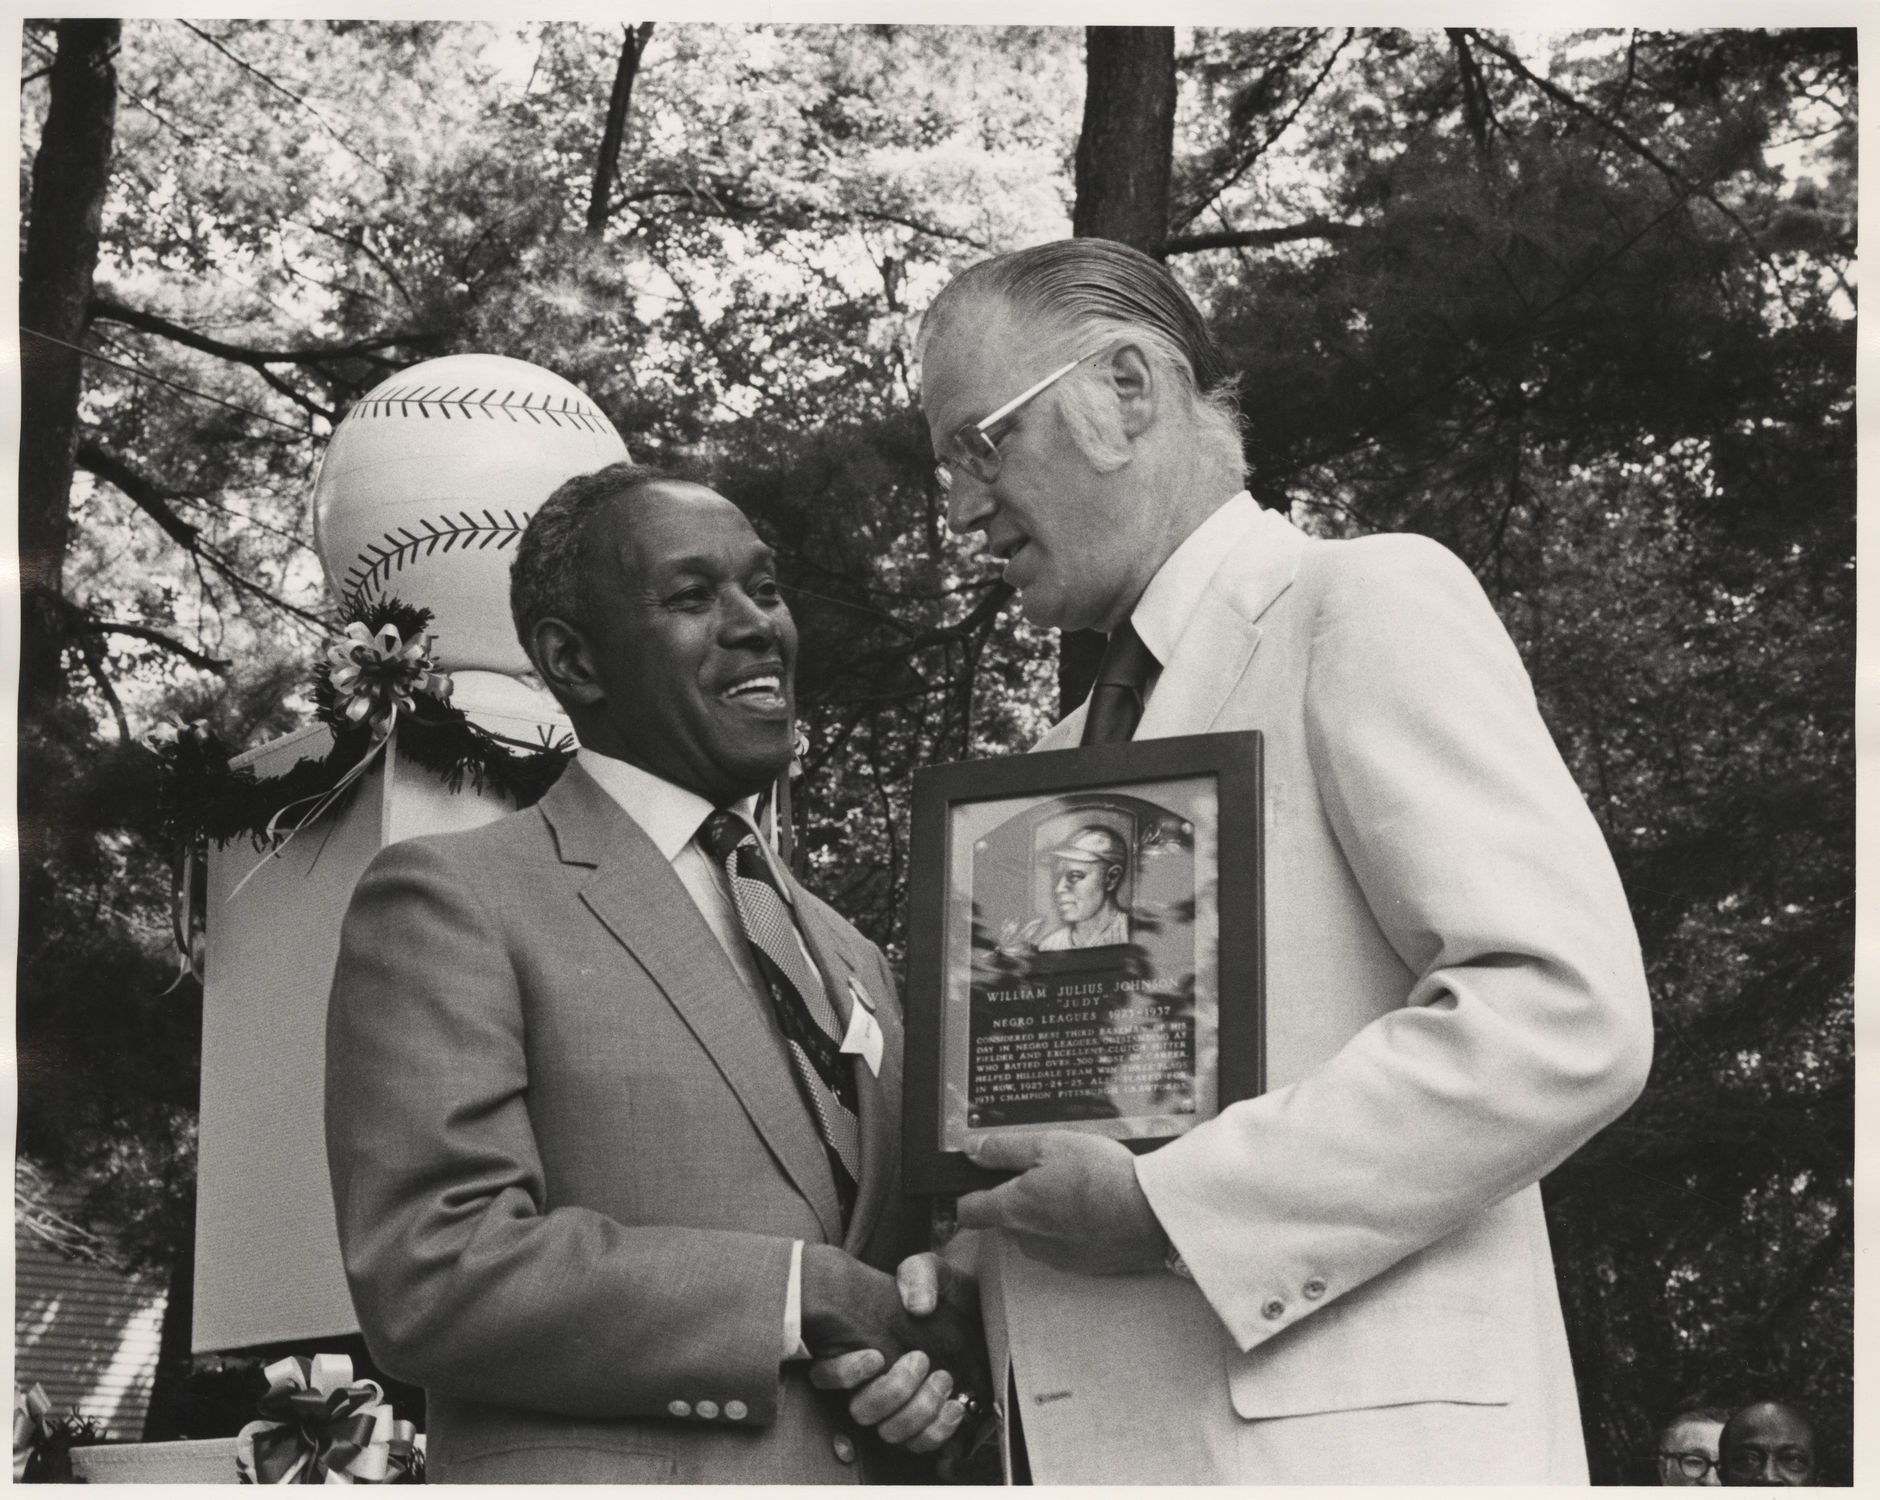 judy johnson accepting his plaque from commissioner bowie kuhn during the 1975 hall of fame induction ceremony bl 35788 national baseball hall of fame